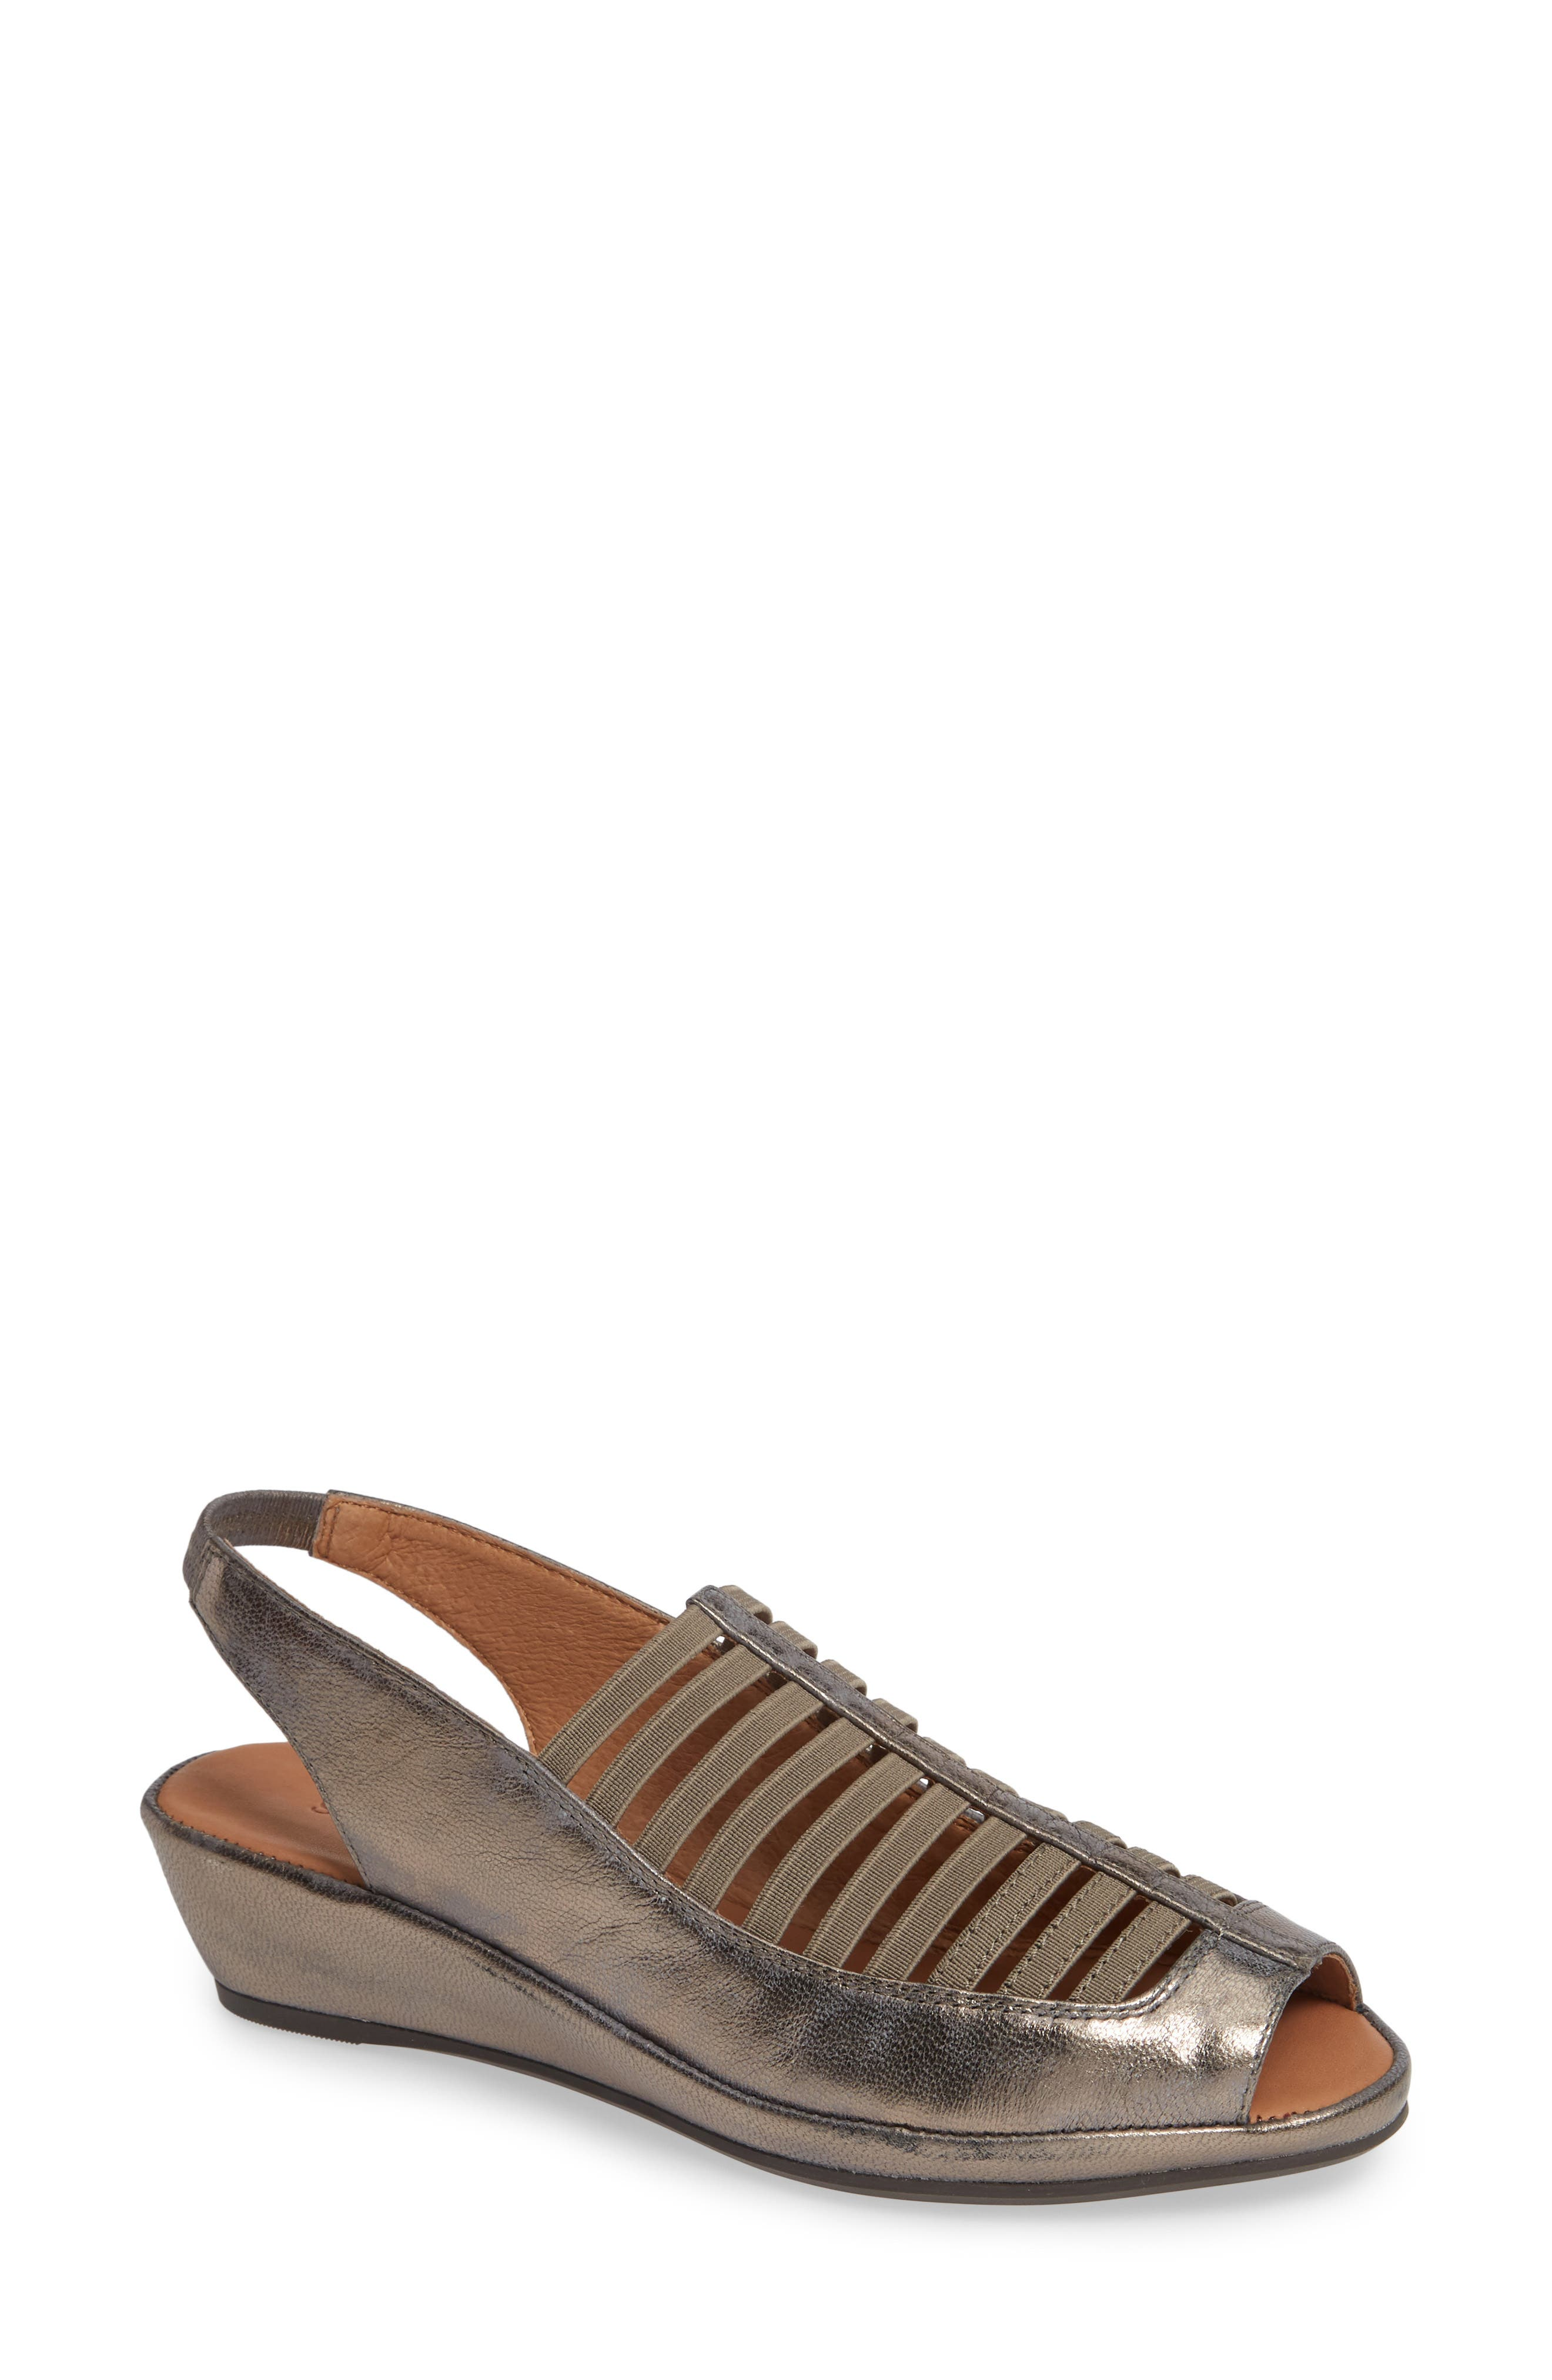 GENTLE SOULS BY KENNETH COLE 'Lee' Sandal, Main, color, PEWTER METALLIC LEATHER